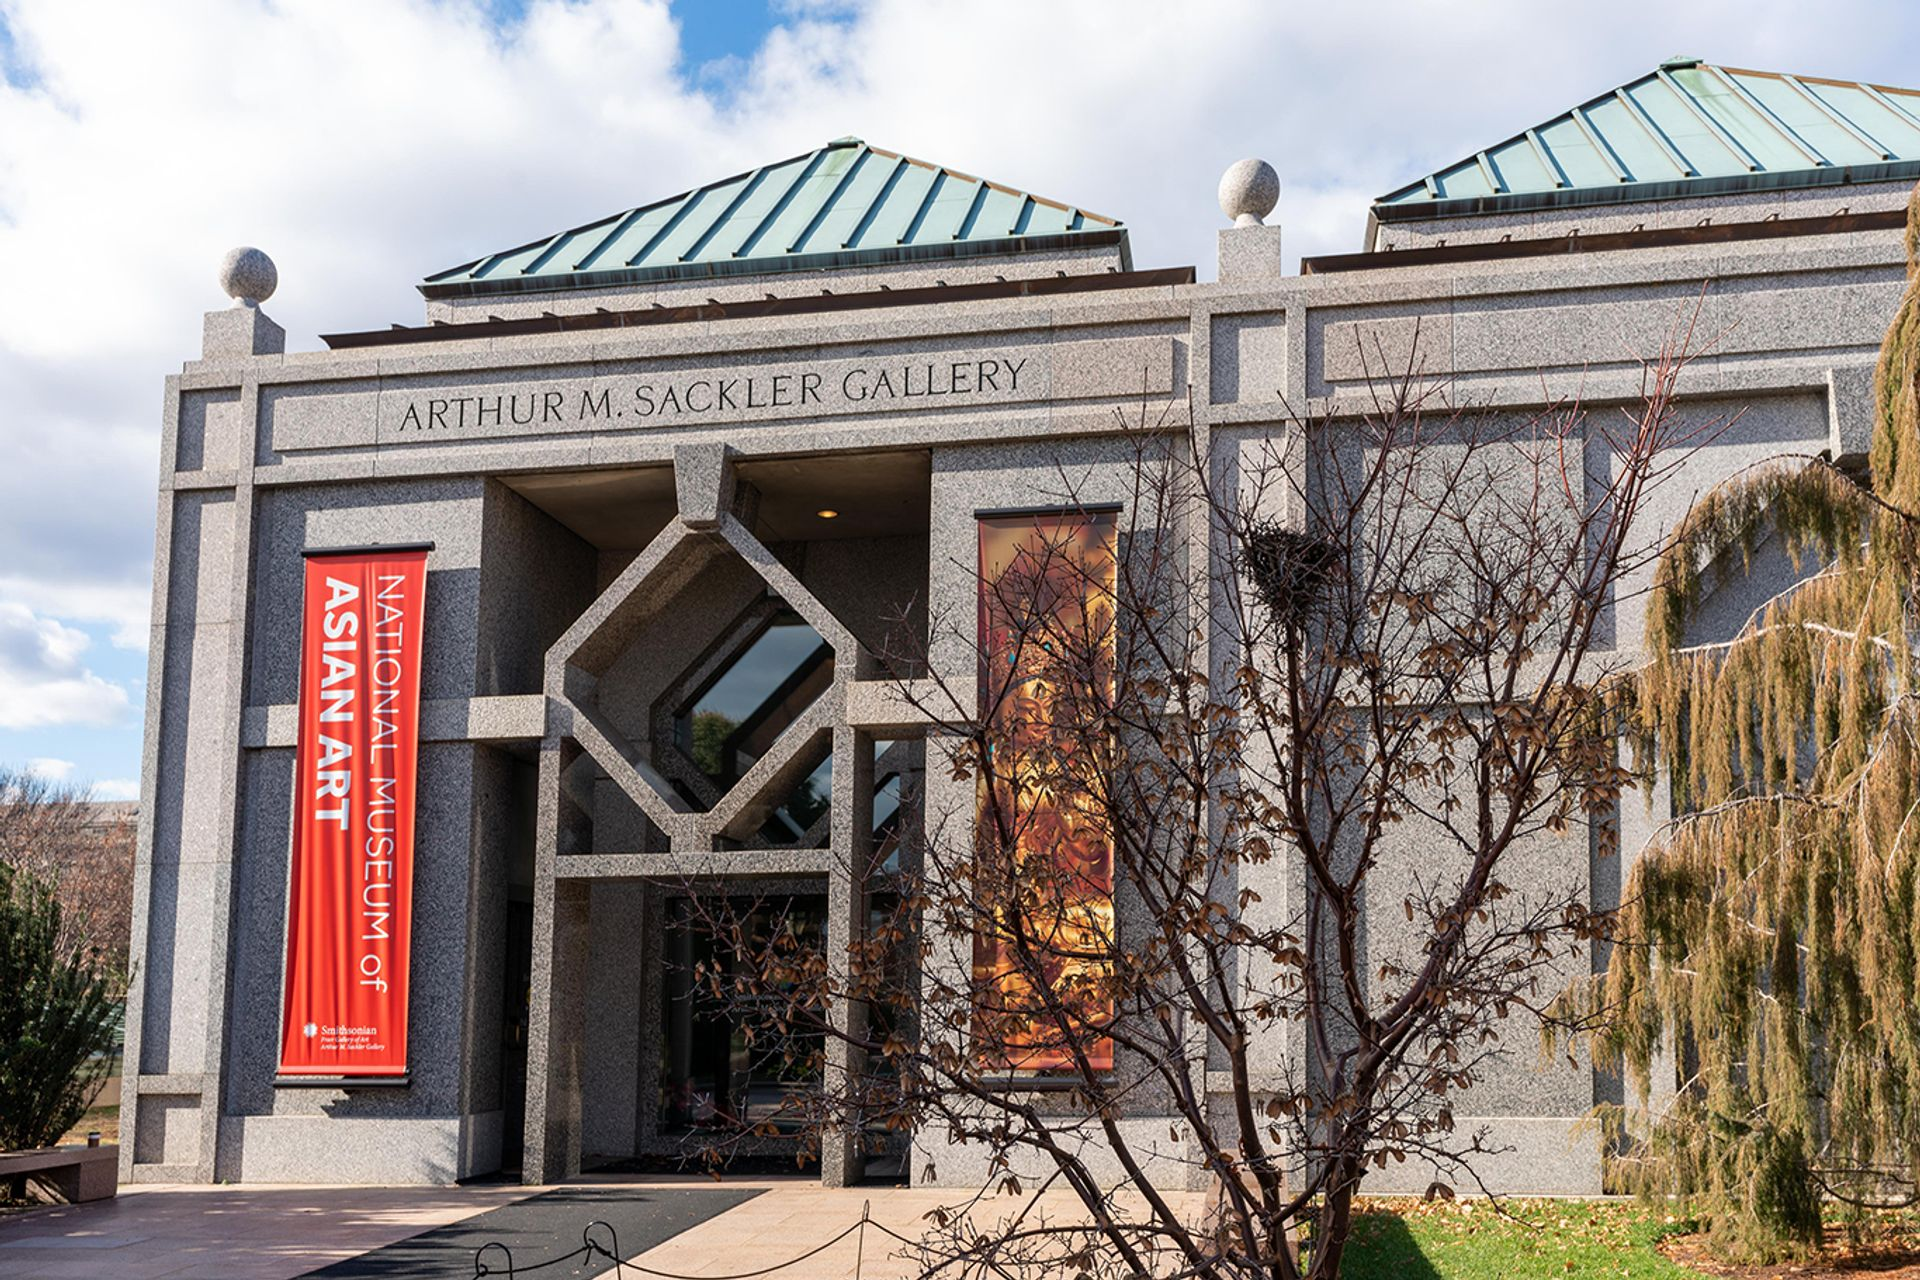 The Arthur M. Sackler Gallery with its new banner identifying it as part of a National Museum of Asian Art Freer and Sackler staff